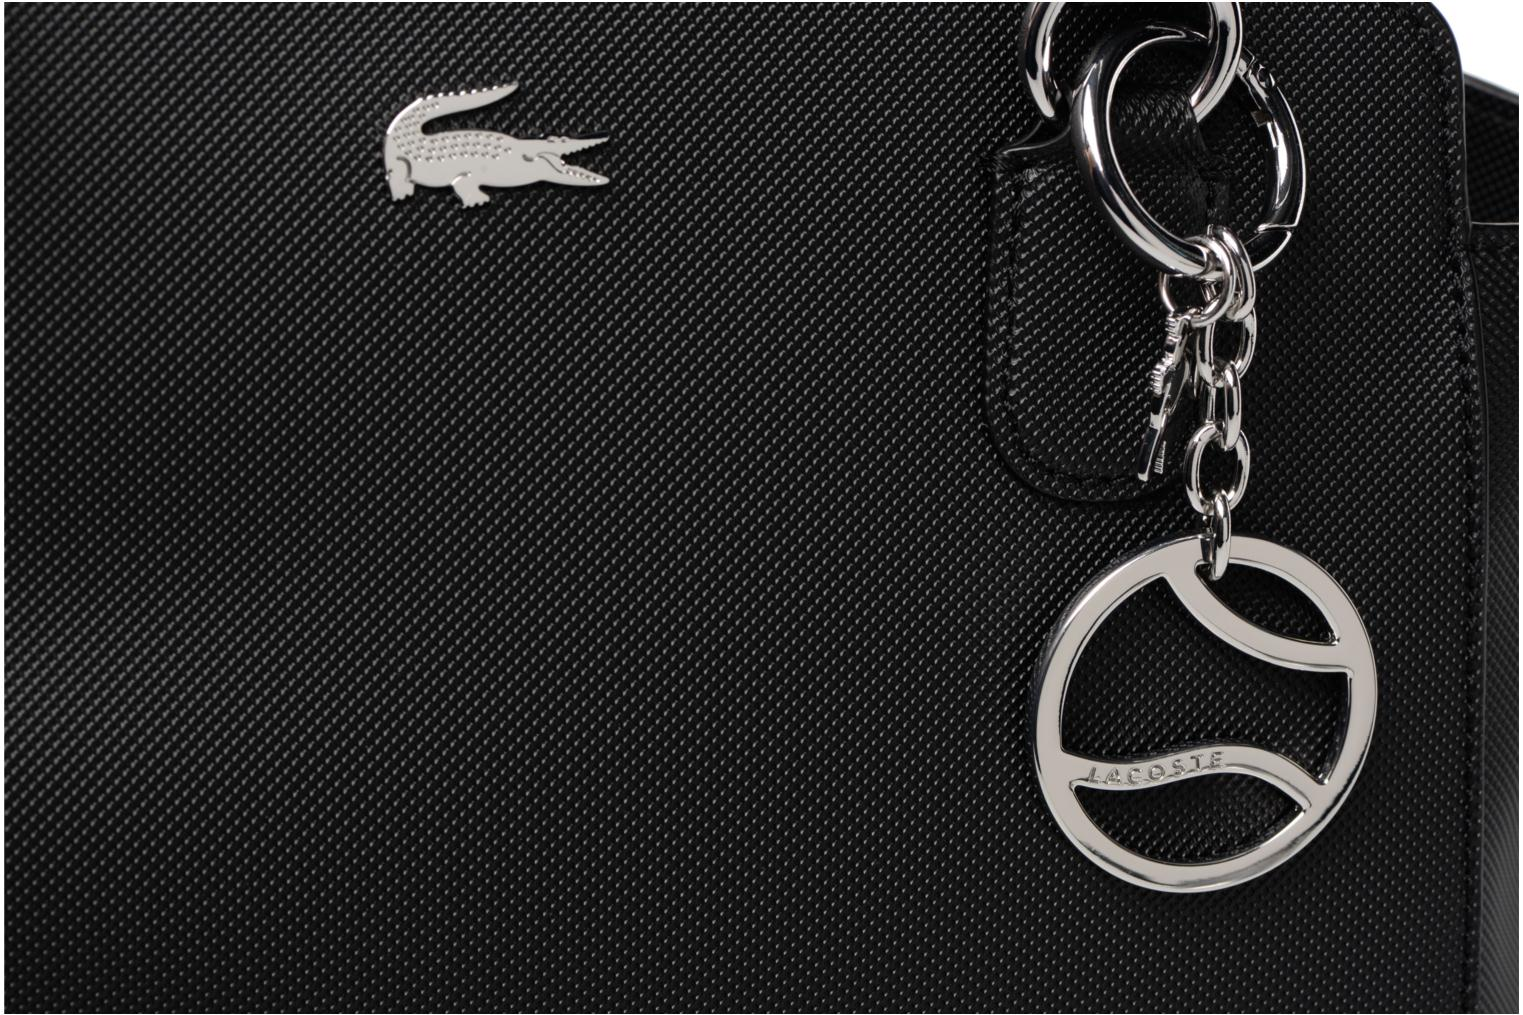 000 Bag Lacoste Black CLASSIC DAILY qOwwtpxT